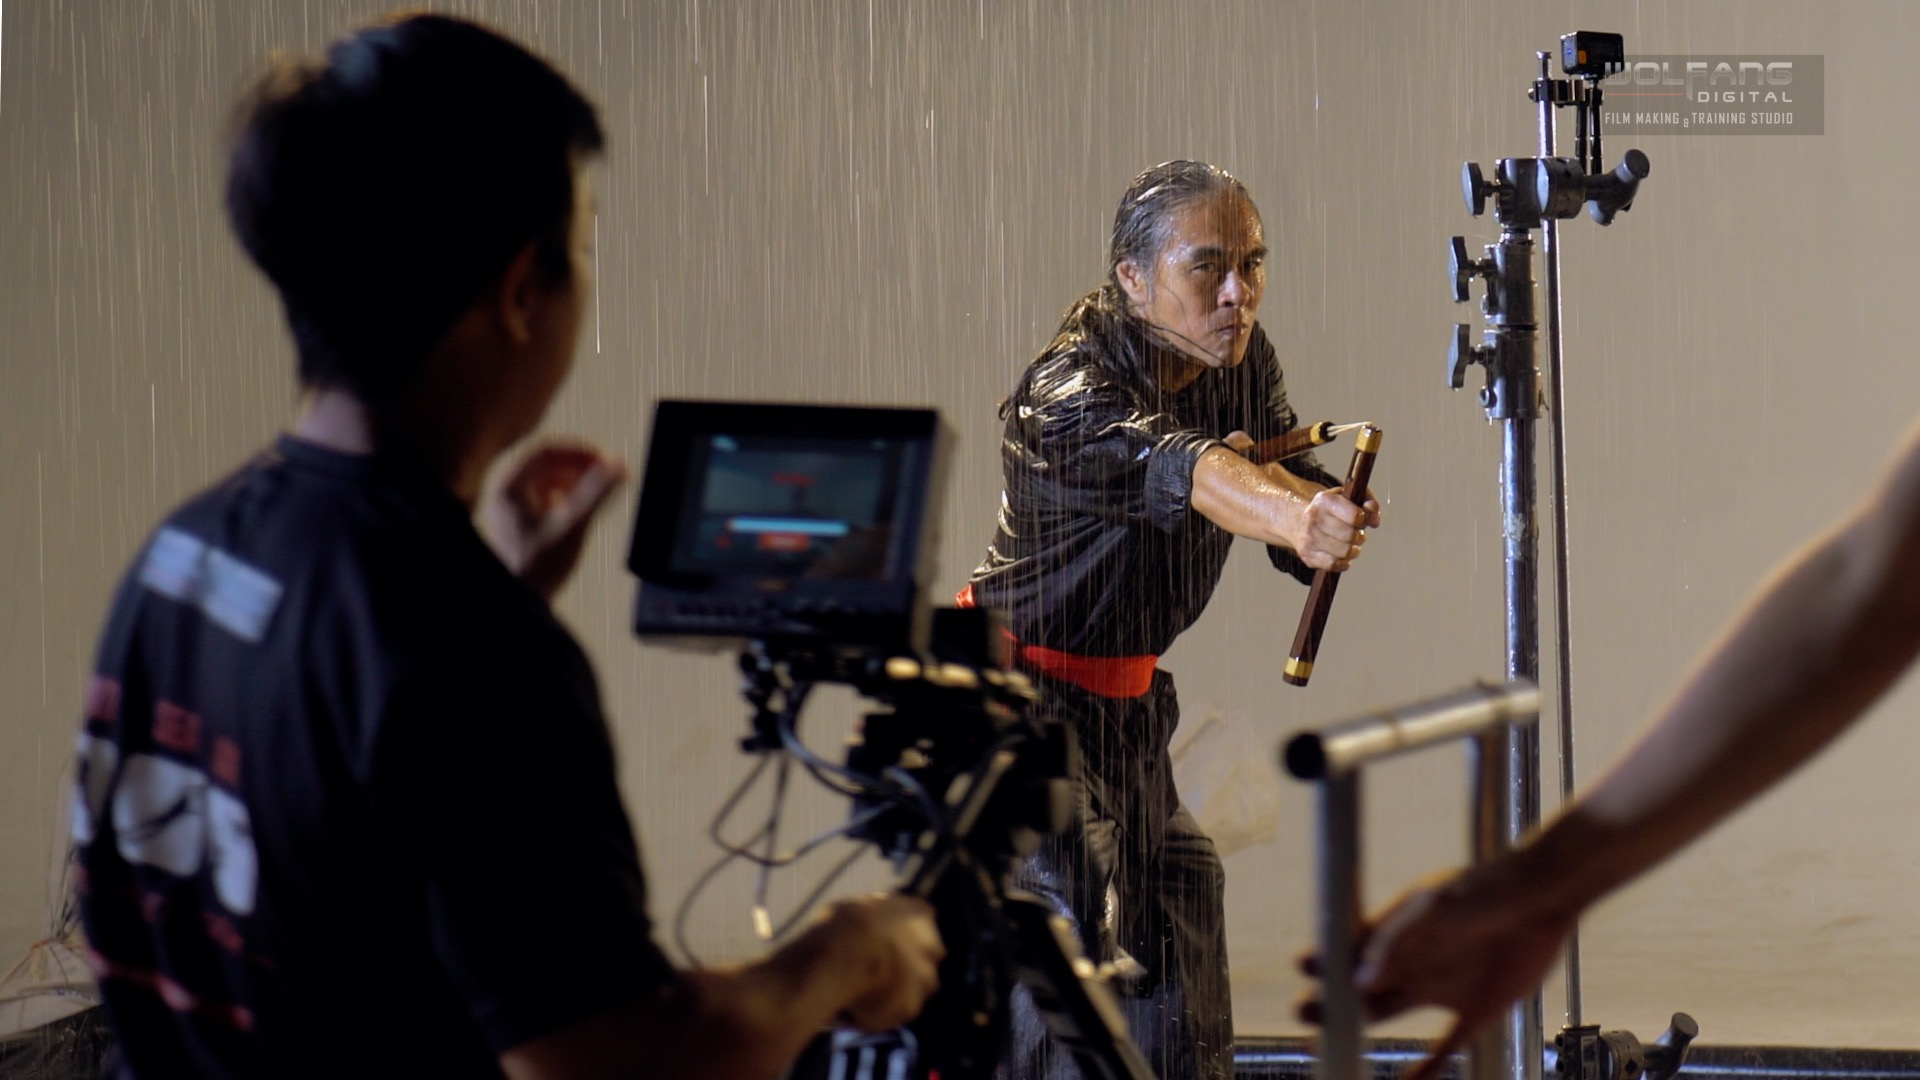 Martial arts expert sensei James Lee with DP Baron Abas on the set of 5tretch in Time